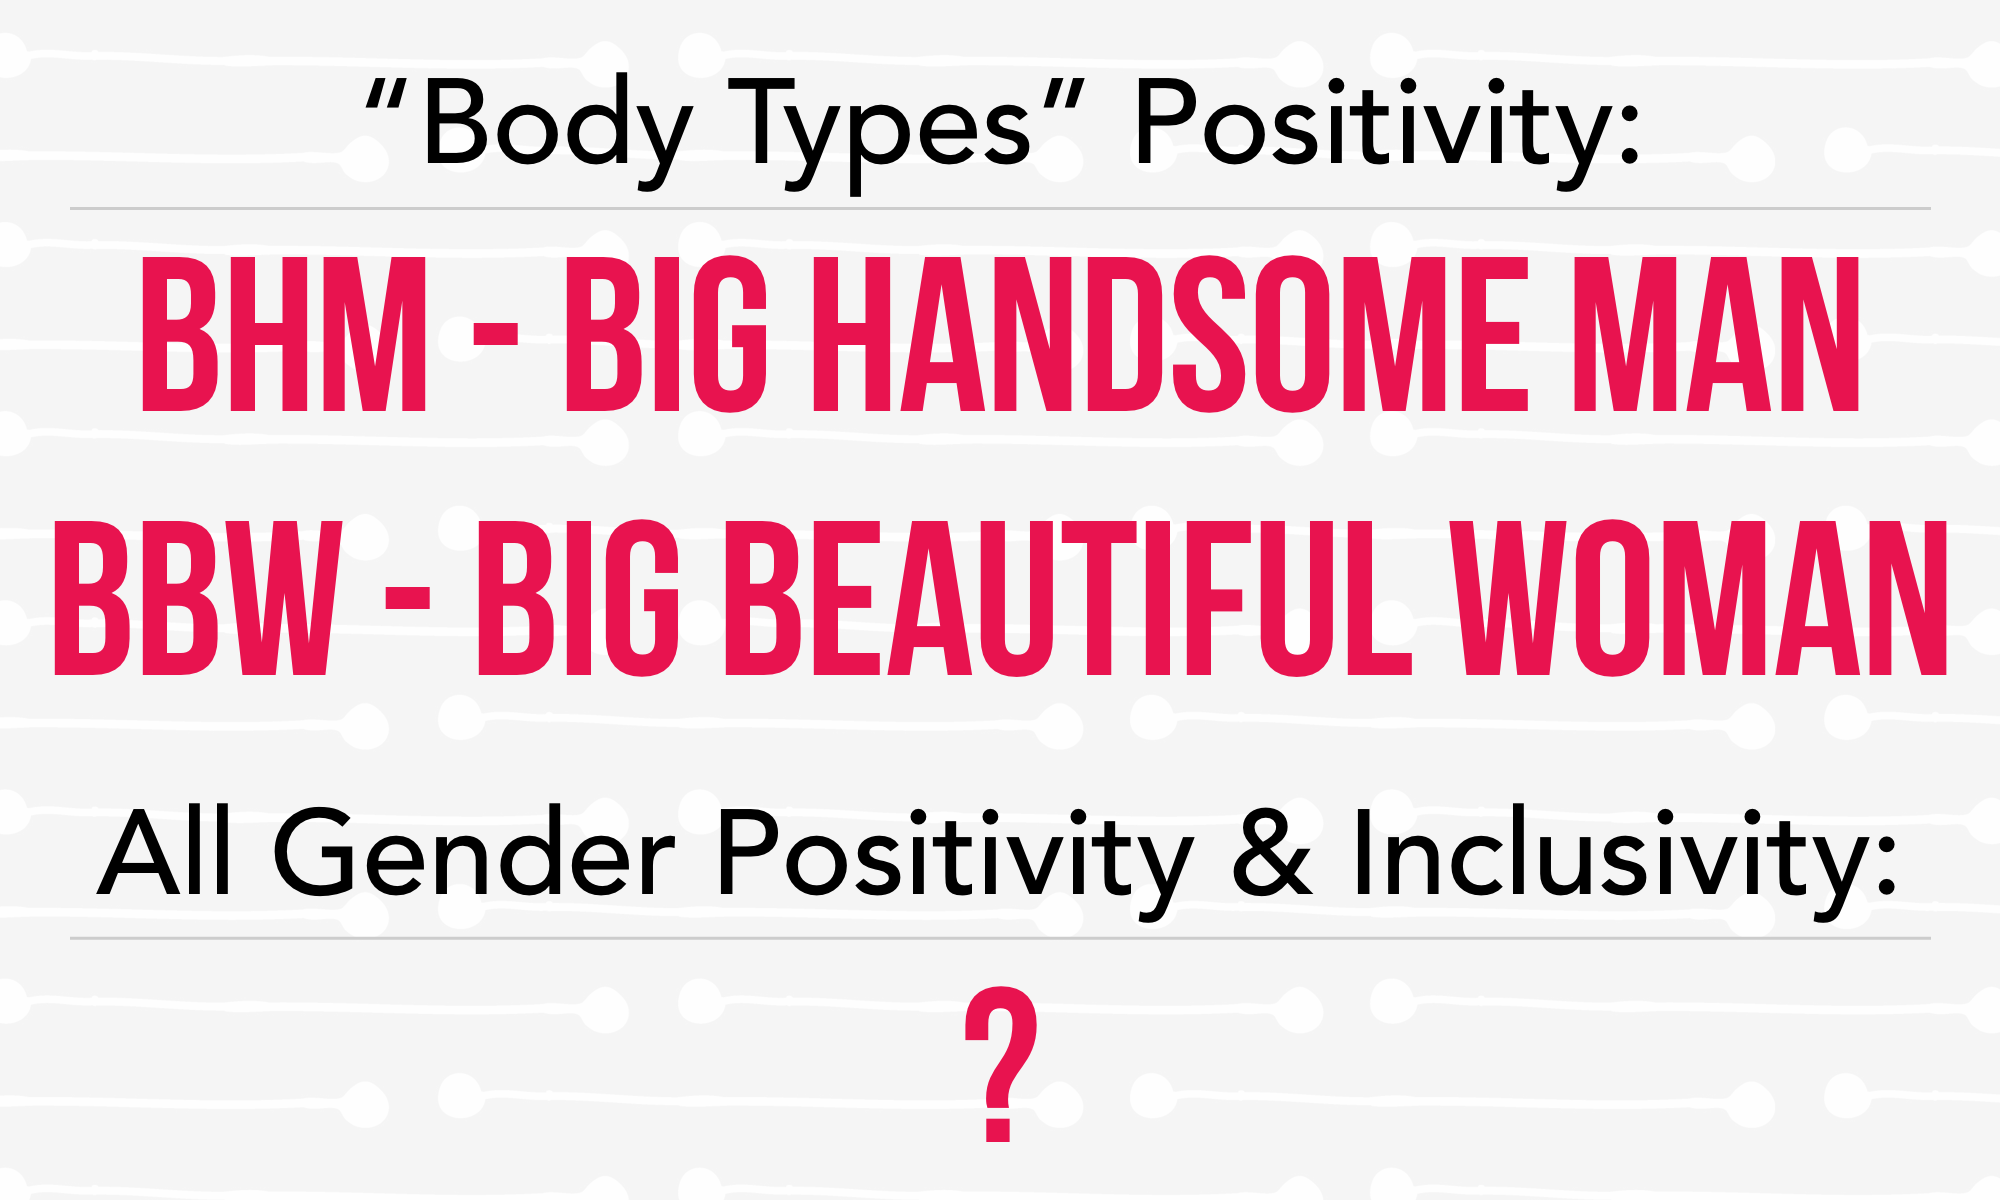 Body Types Positivity